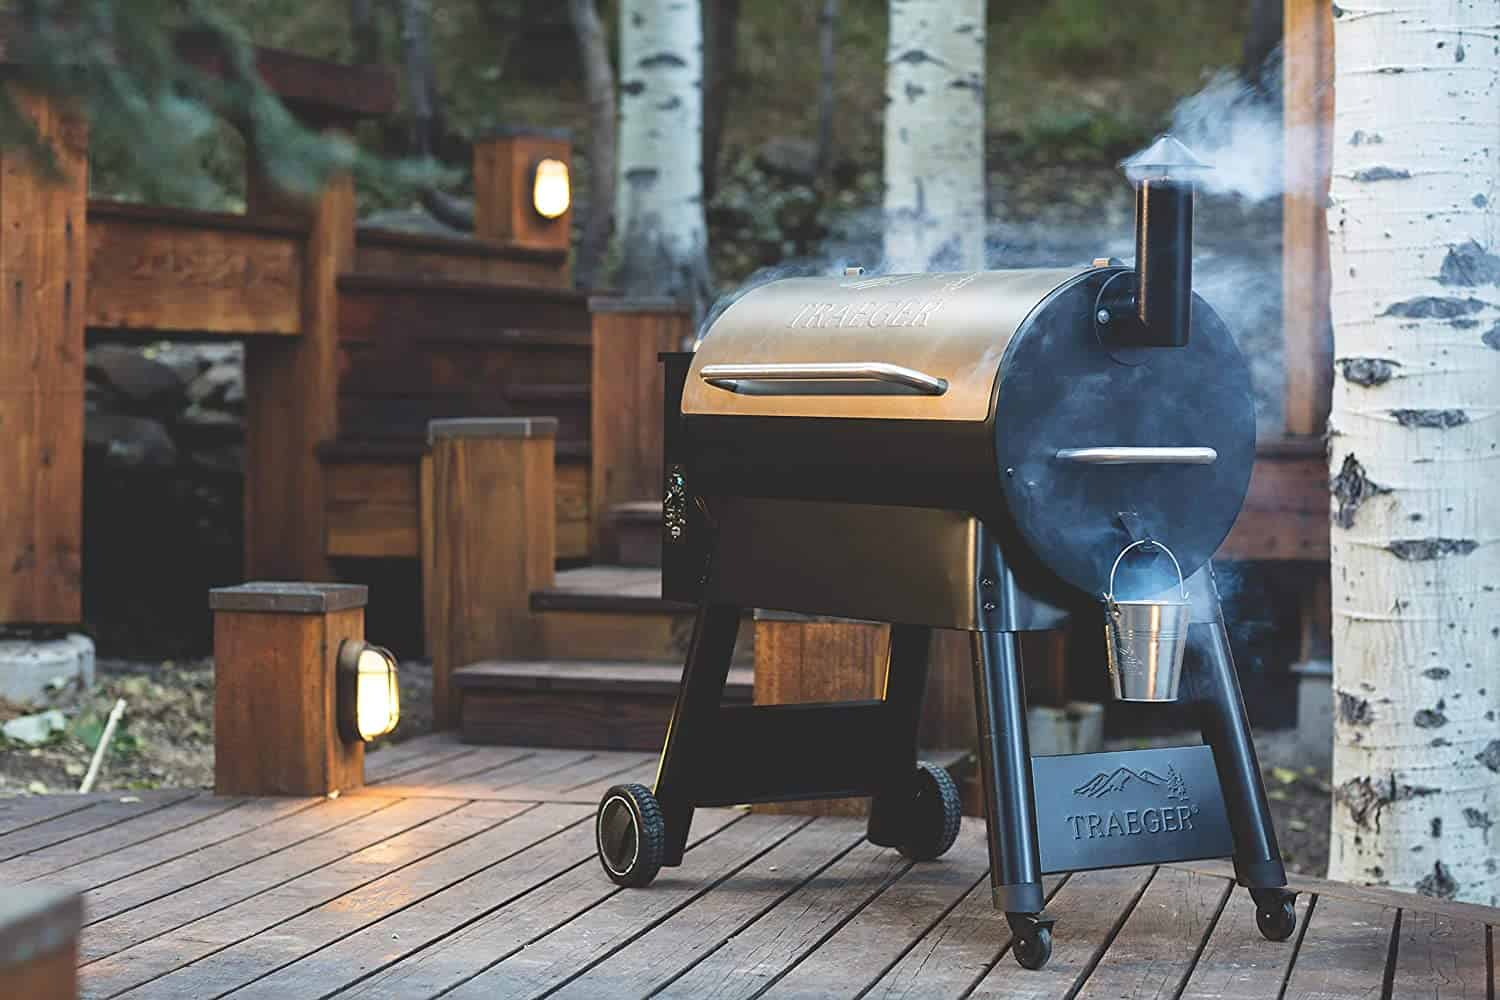 Best large cooking surface: Traeger Pro Series 34